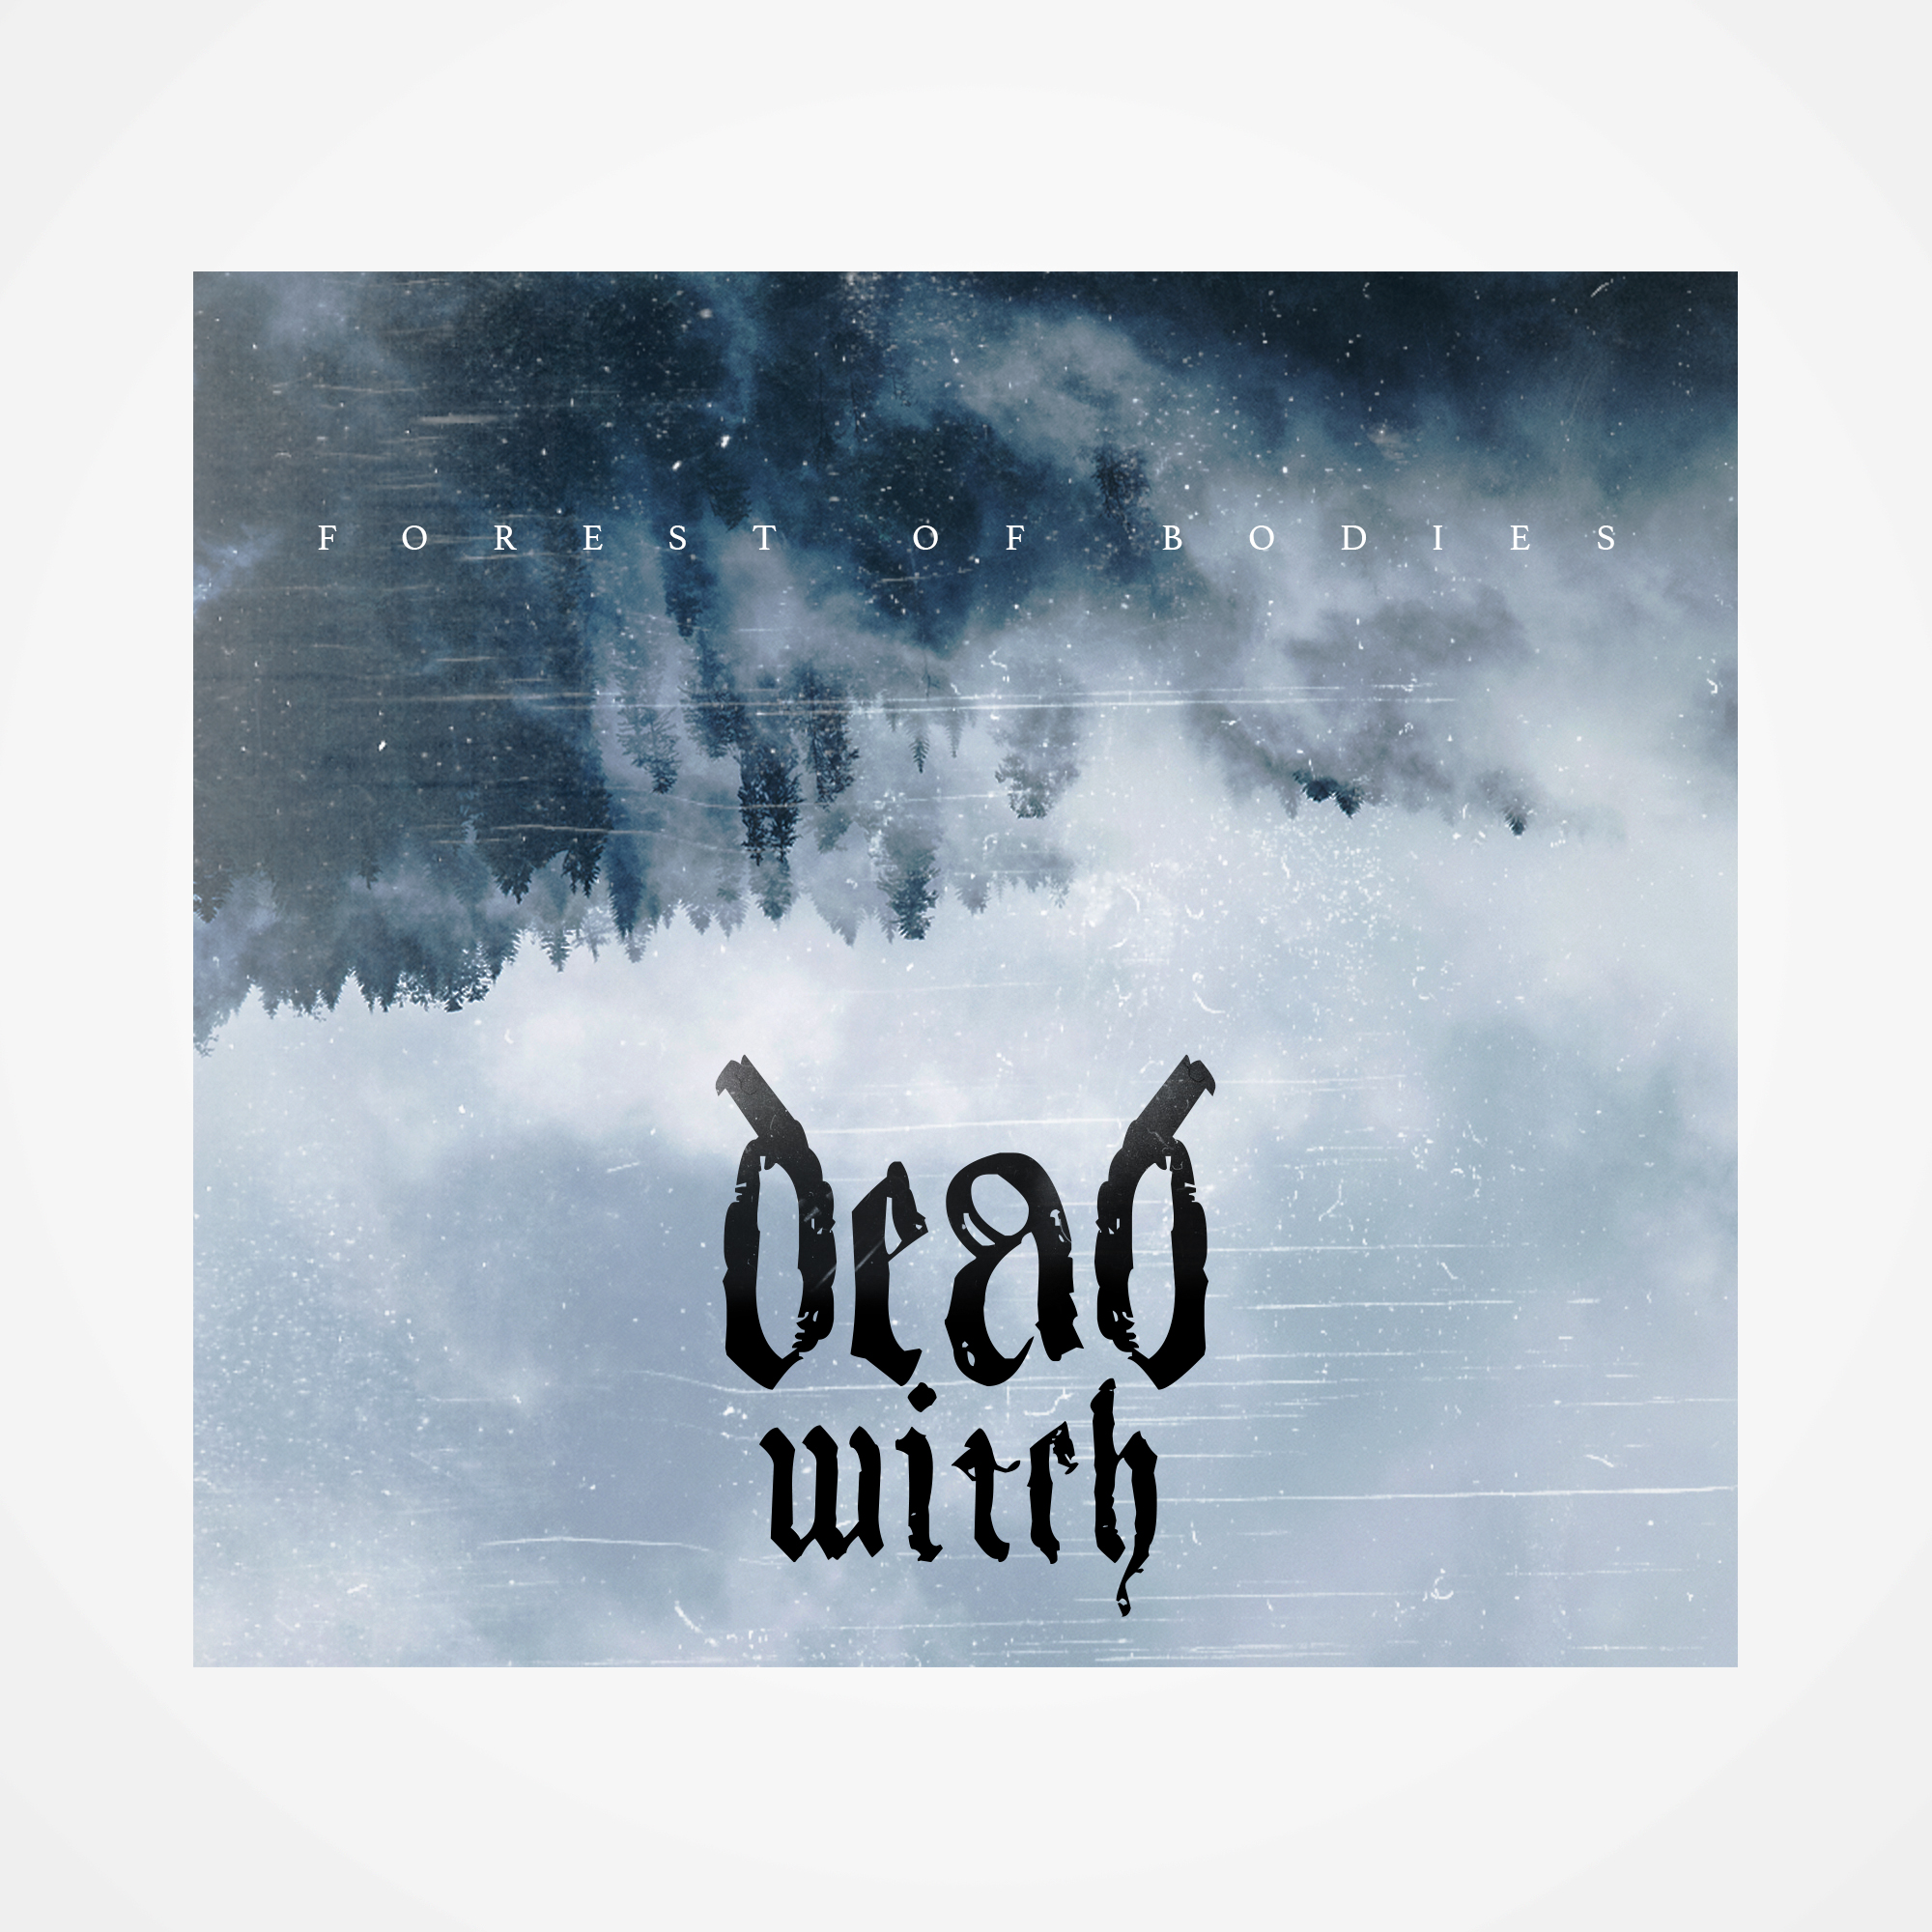 Dead Witch – Forest of Bodies EP